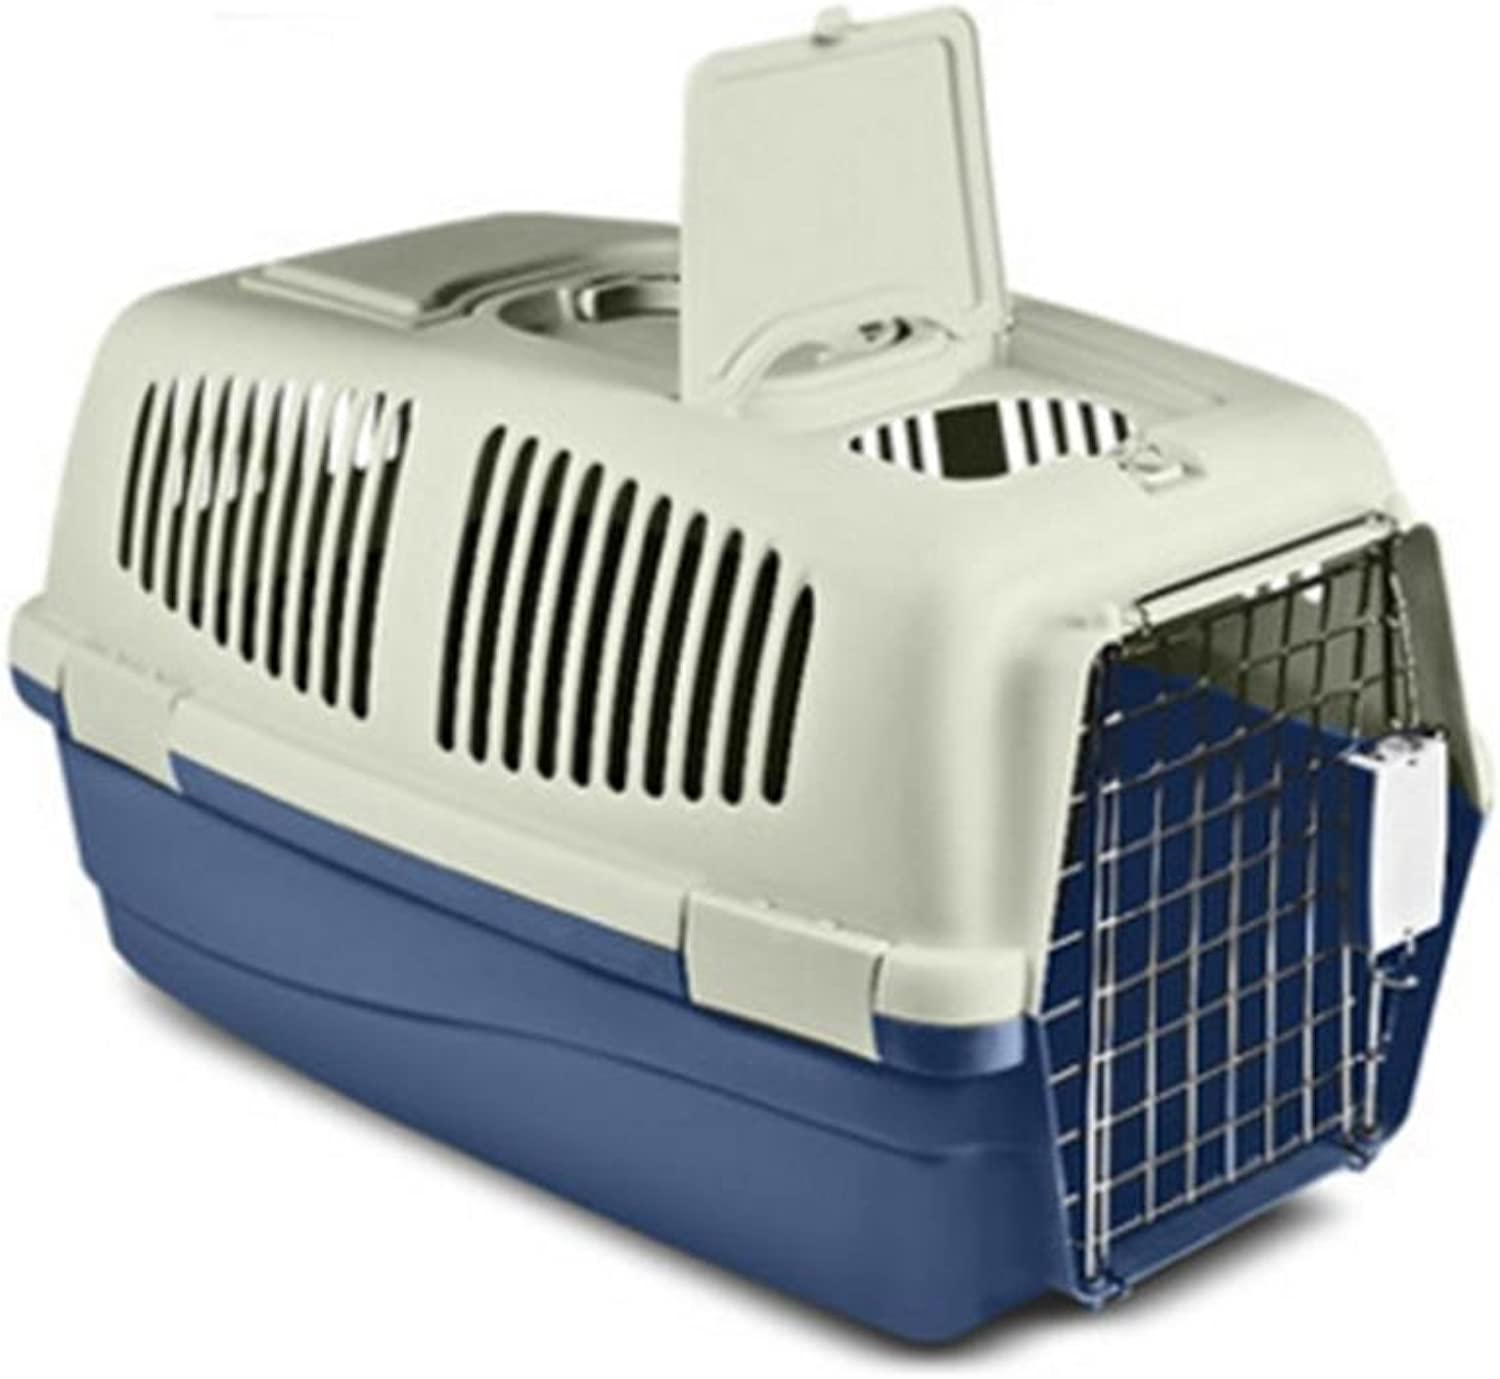 OOFWY Pet Box Cat And Dog Aviation Box Portable Travel Box Have Sunroof Pet Nest ABS Resin Material, 1M